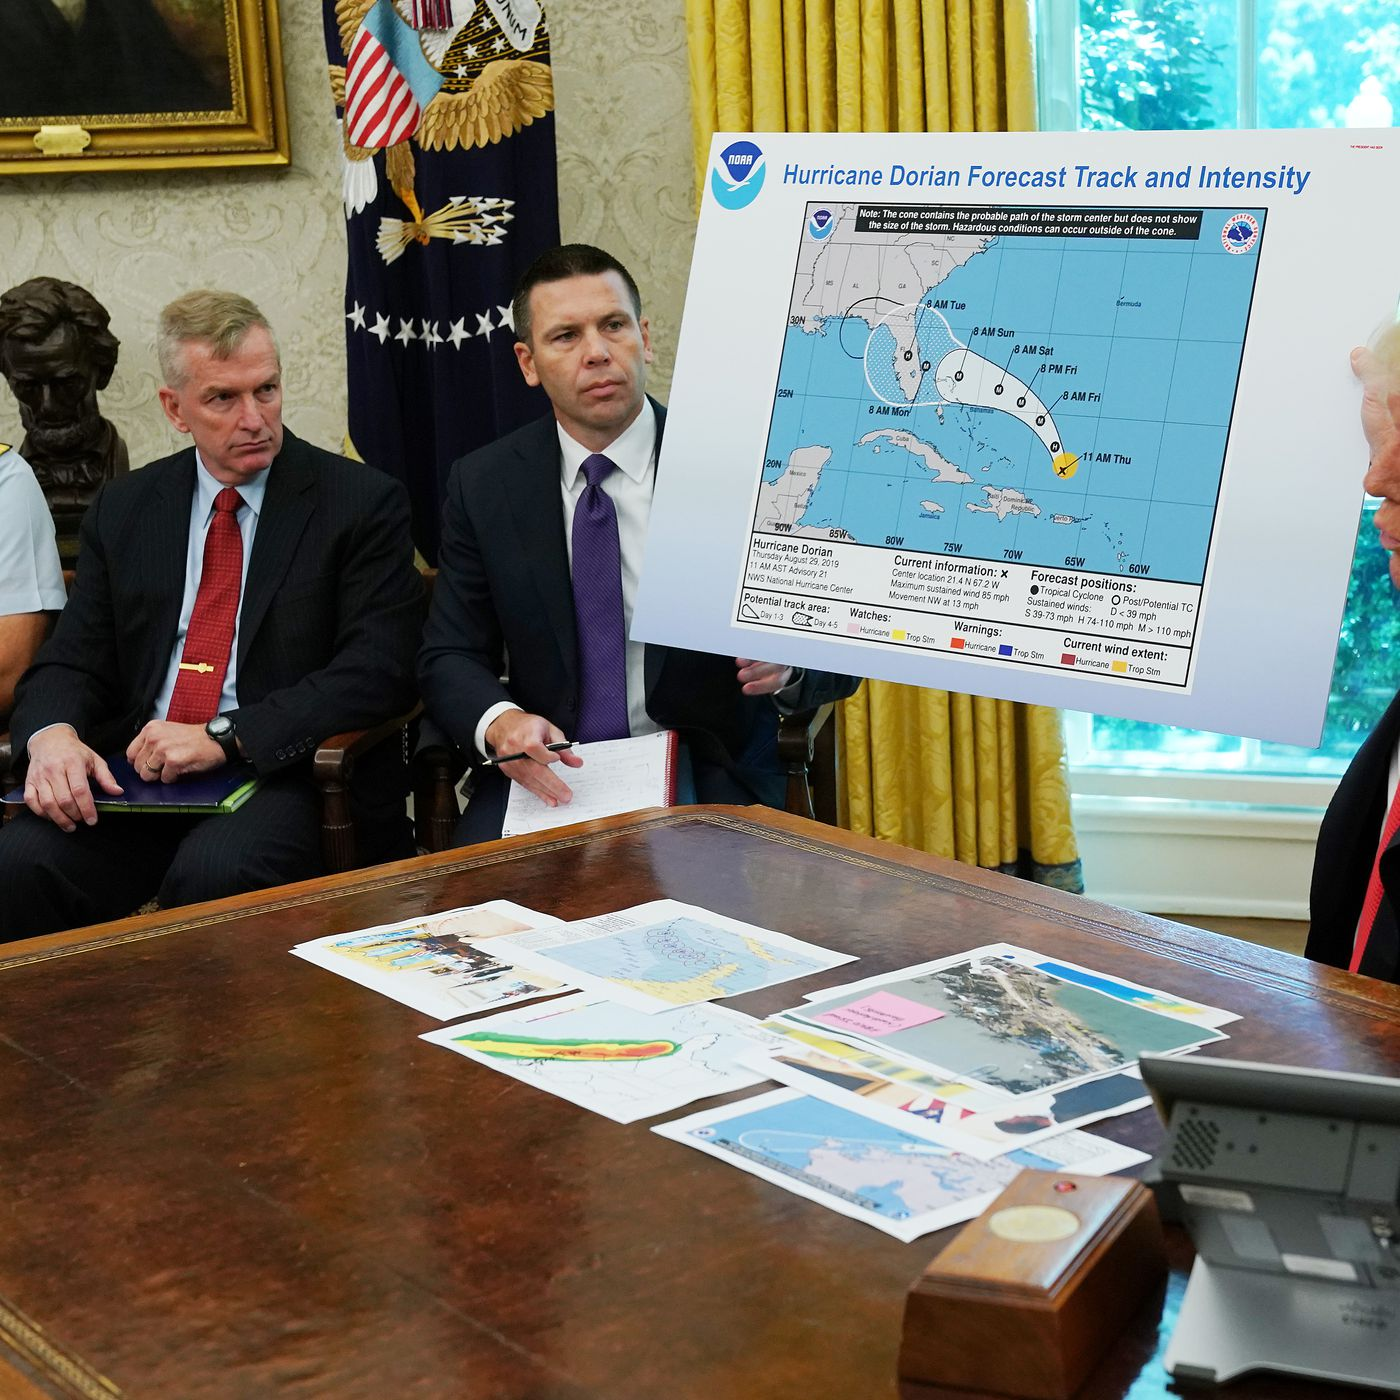 Furious Storm Over Trump S Tweets Continues To Rage At Noaa